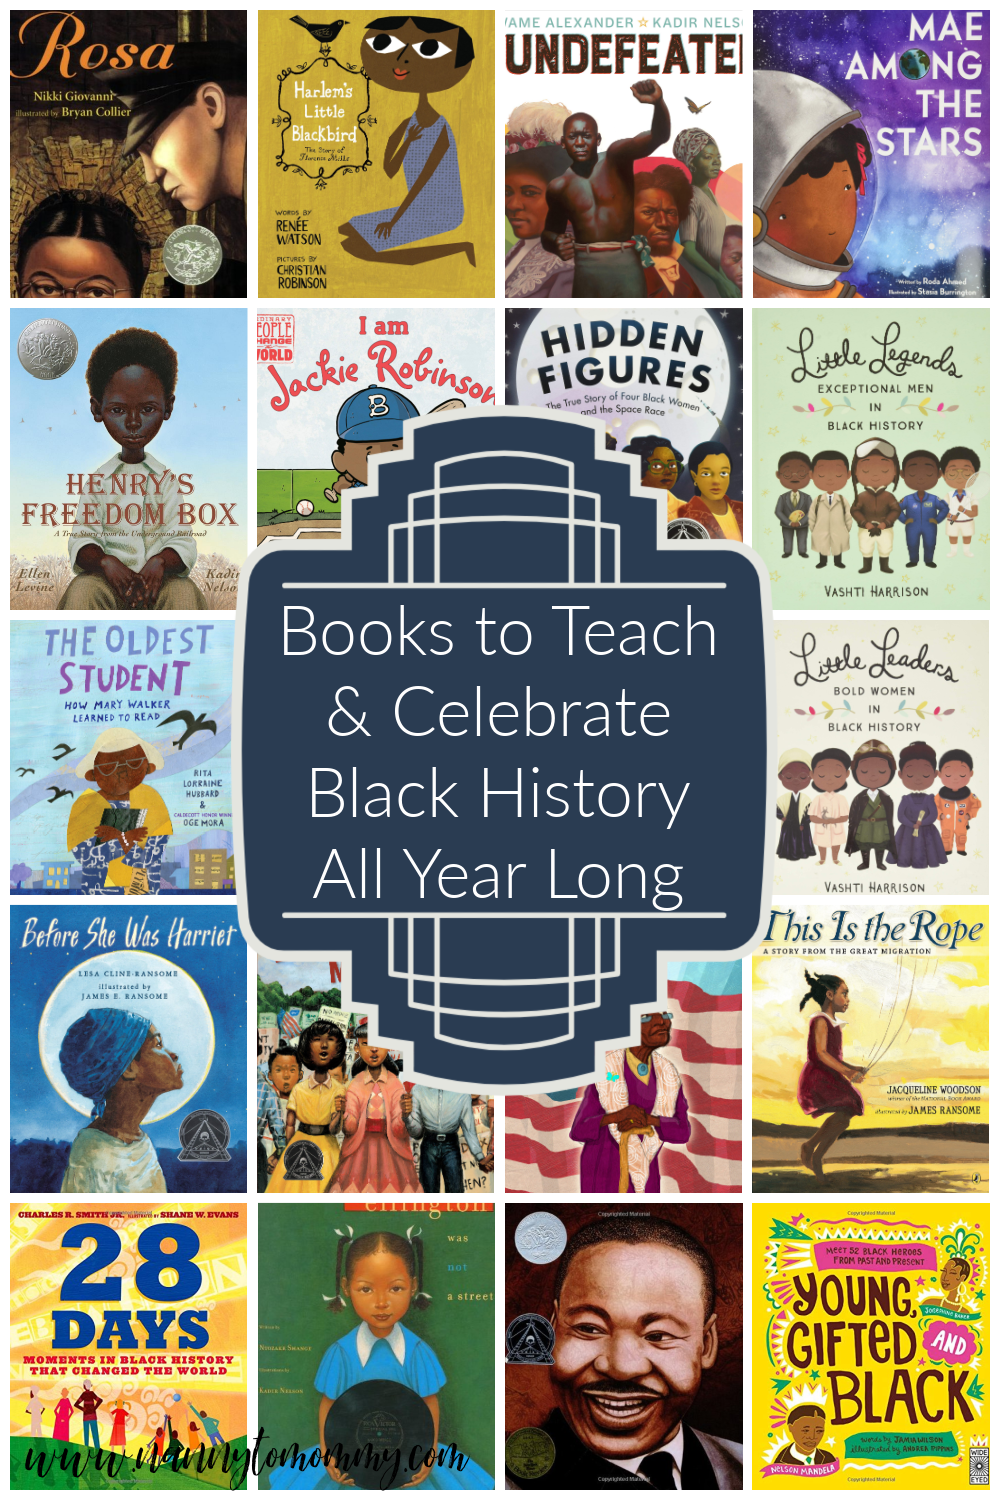 Books to Teach & Celebrate Black History All Year Long